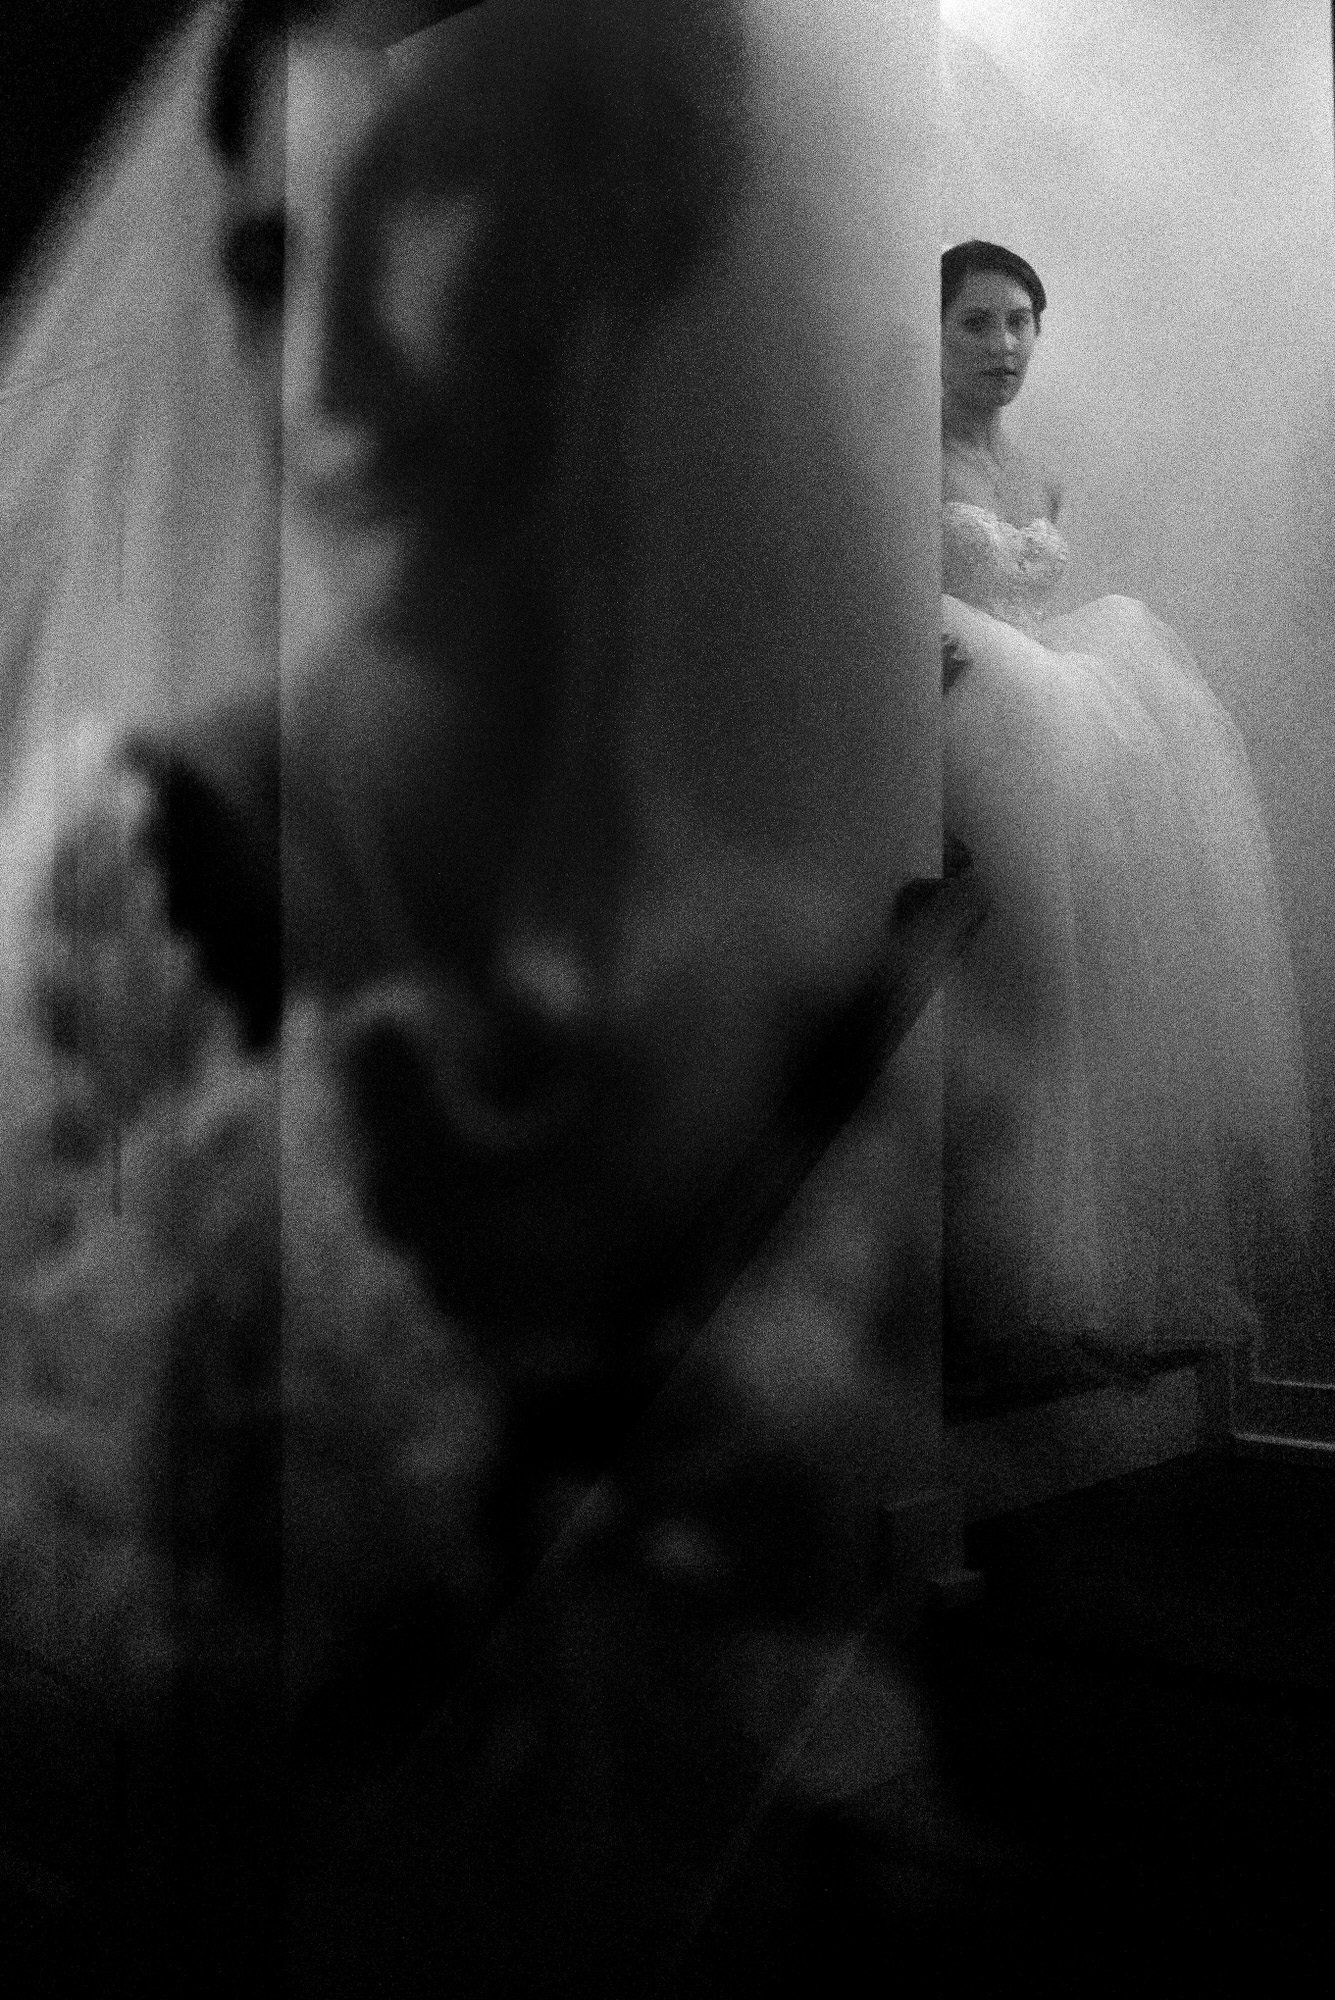 Ethereal portrait of bride with mother's image by Tyler Wirken